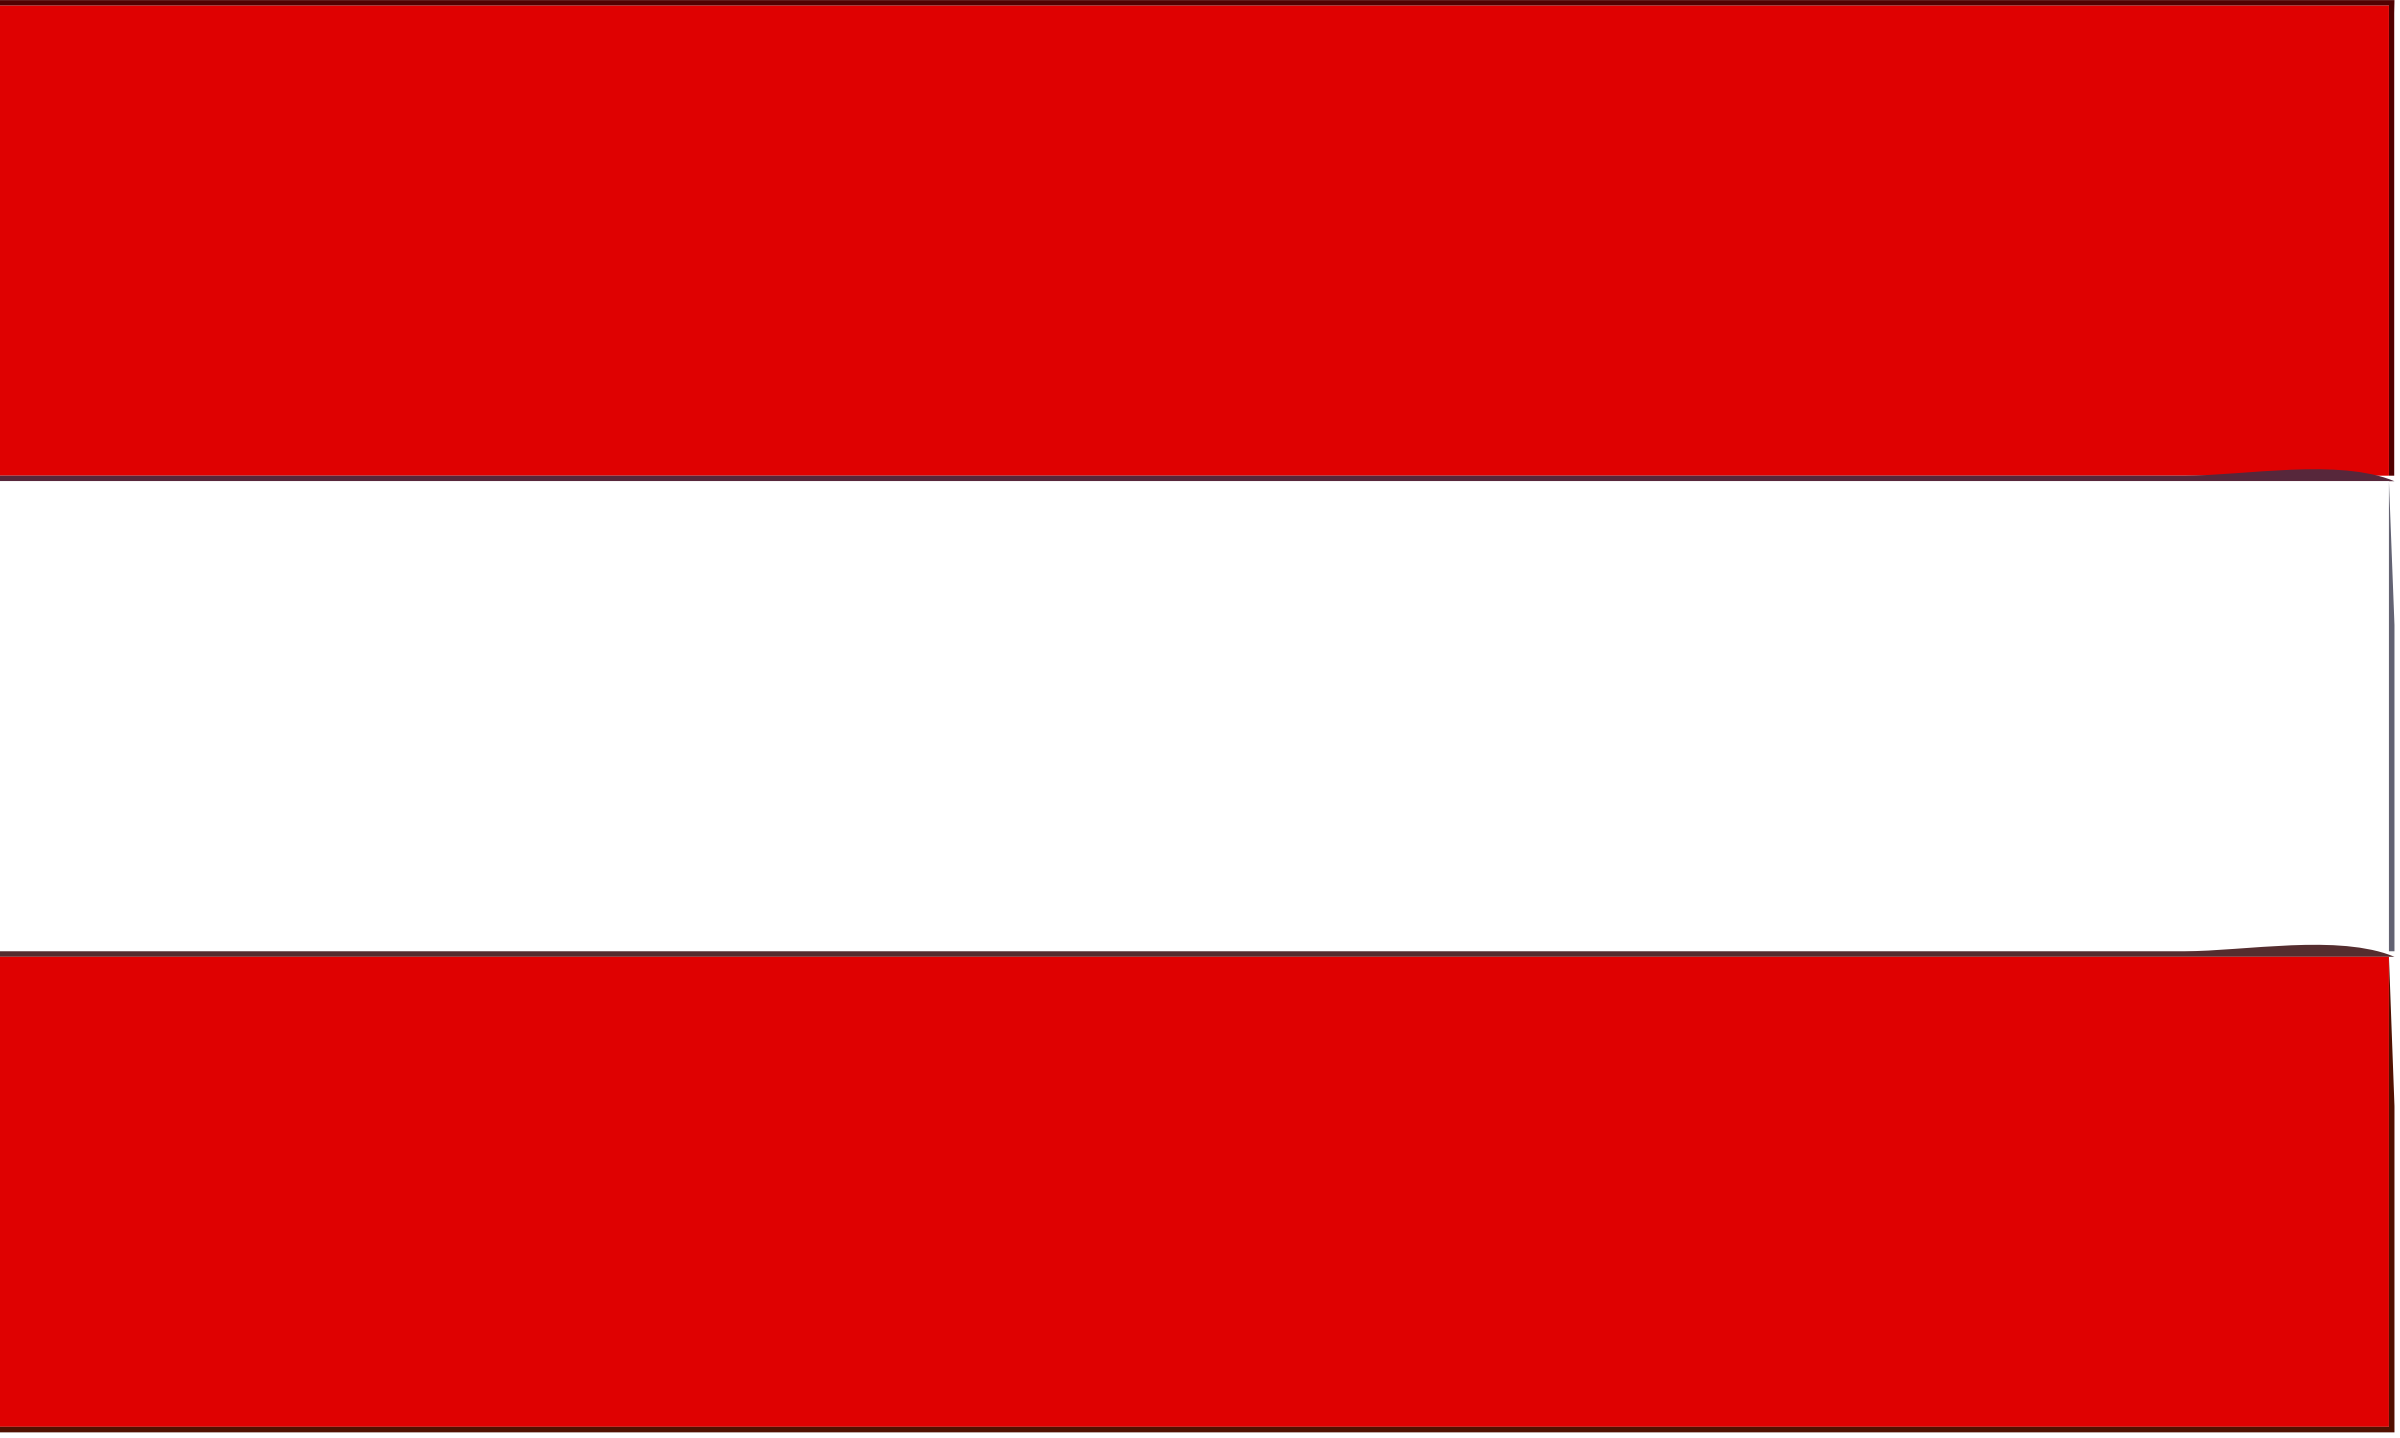 Flag of Austria by Joesph